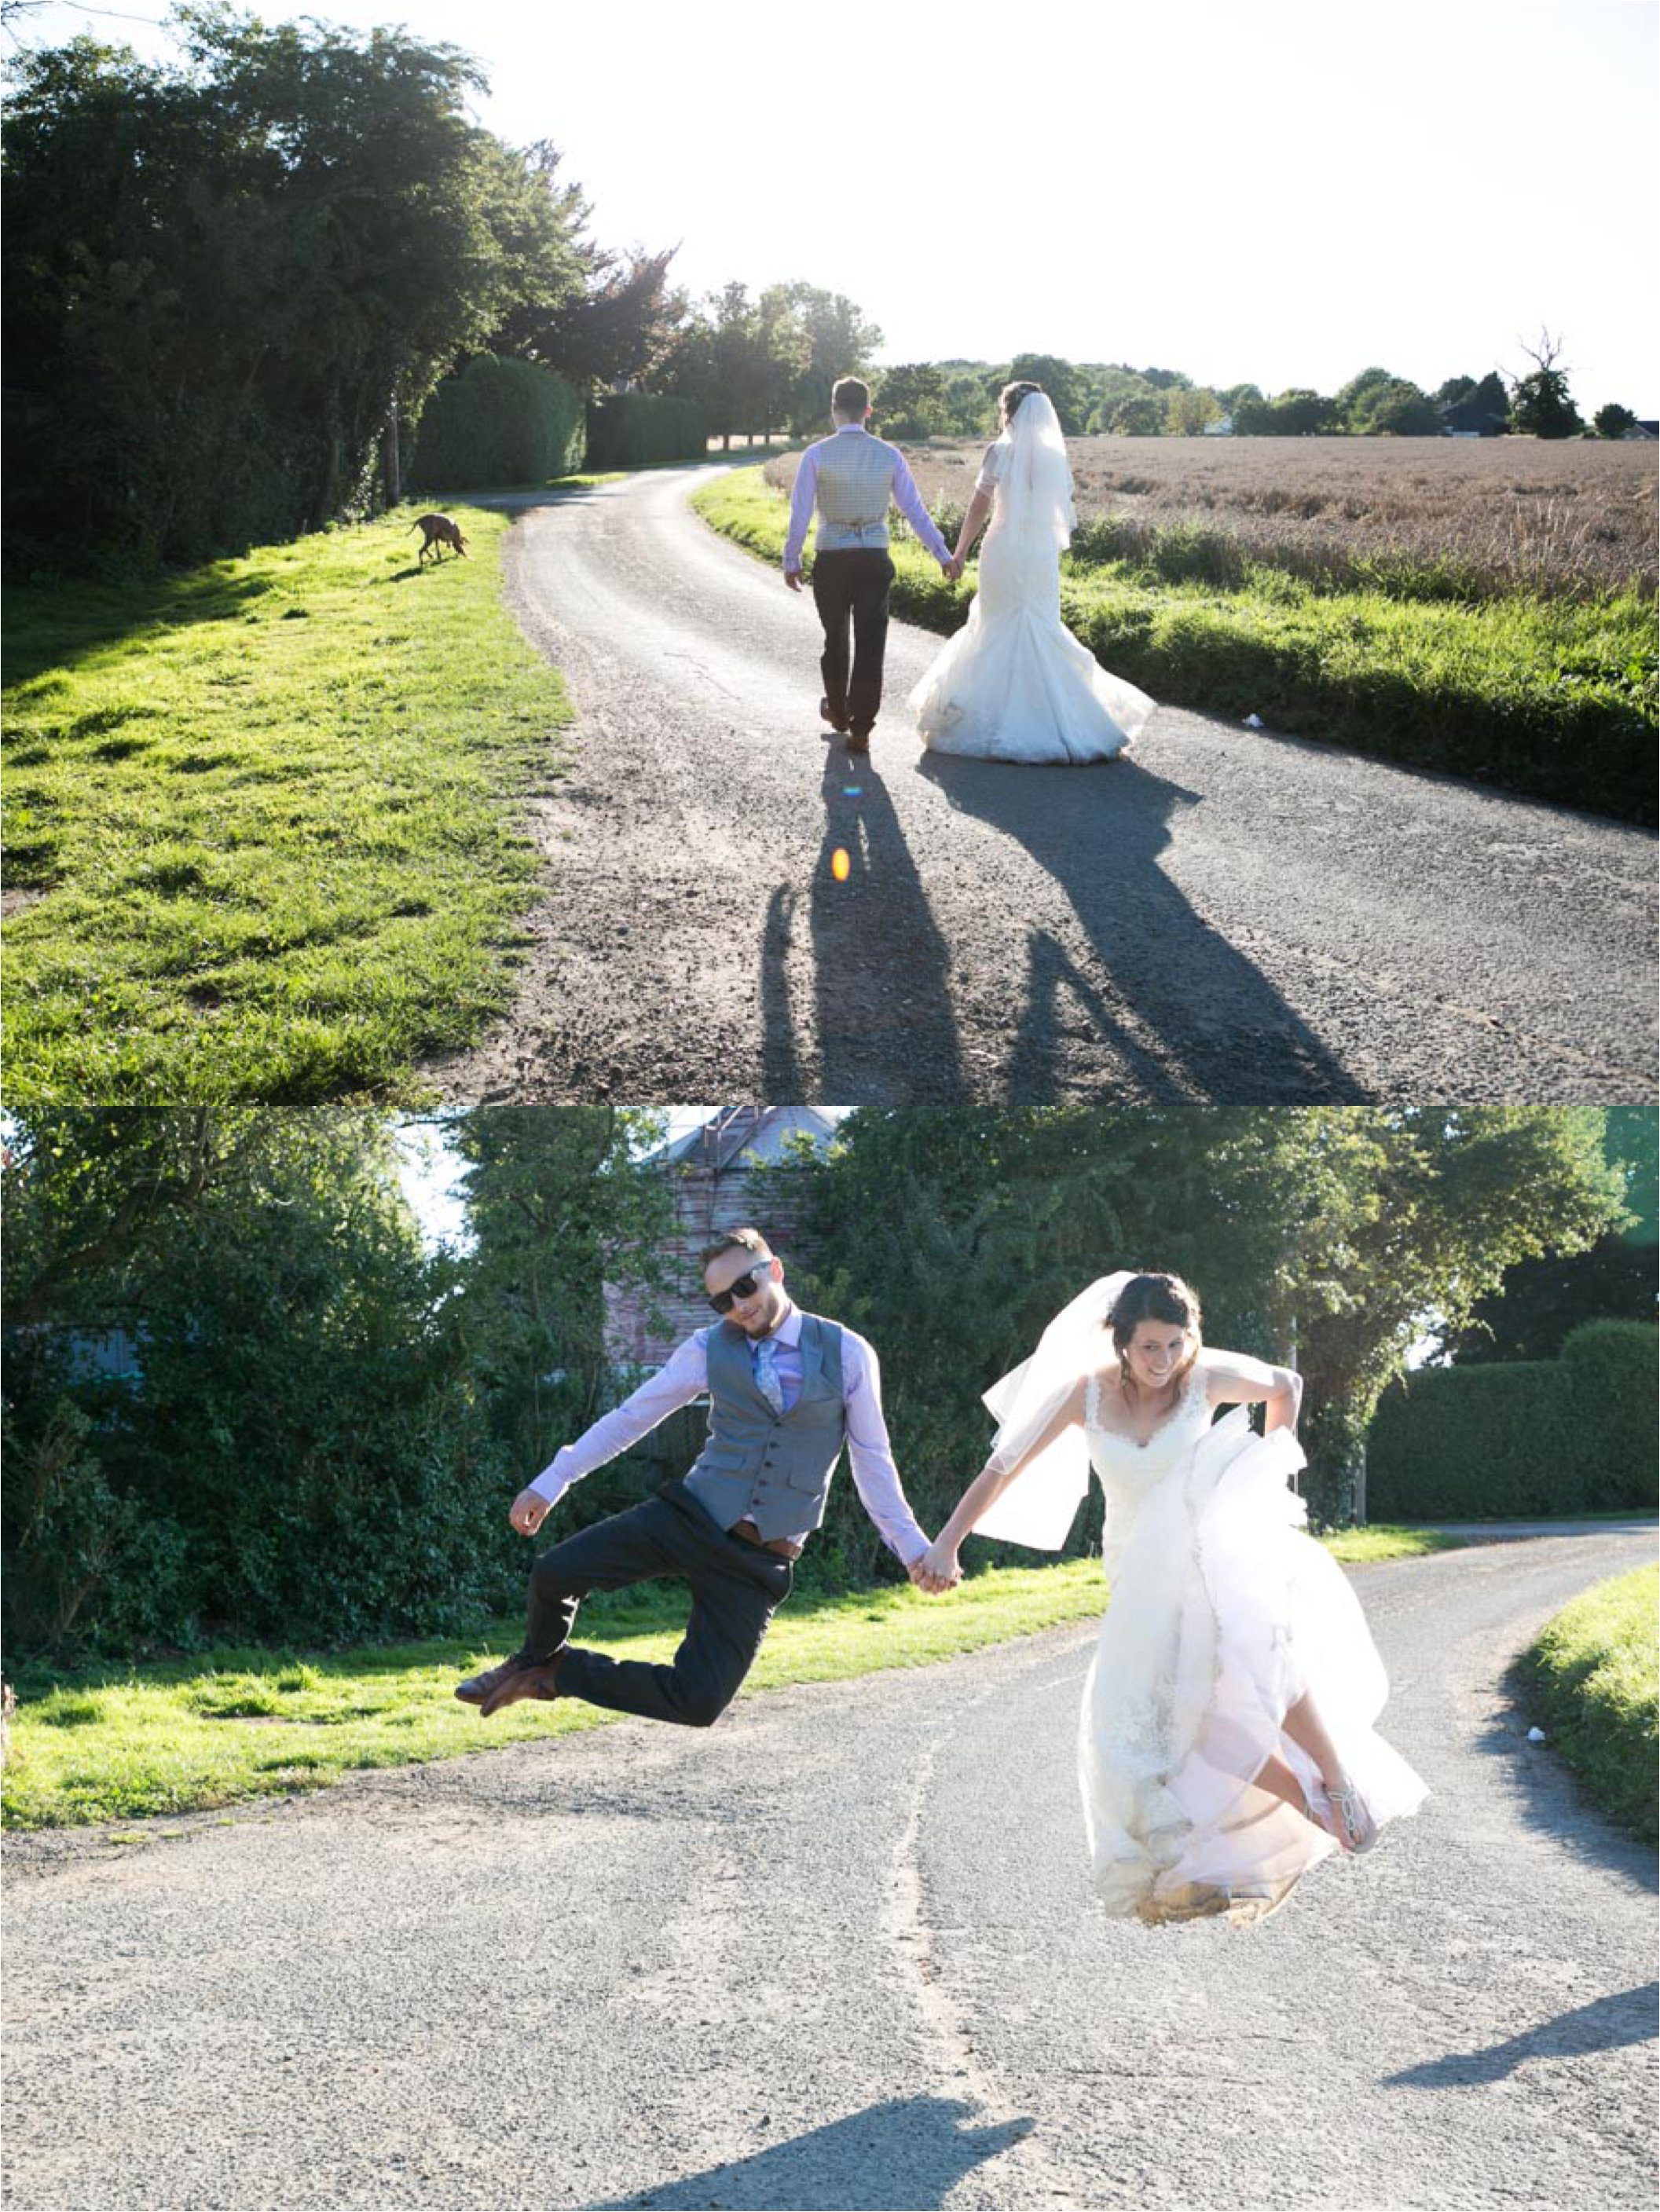 walking into the golden sunshine and bride and groom jumping at suffolk wedding